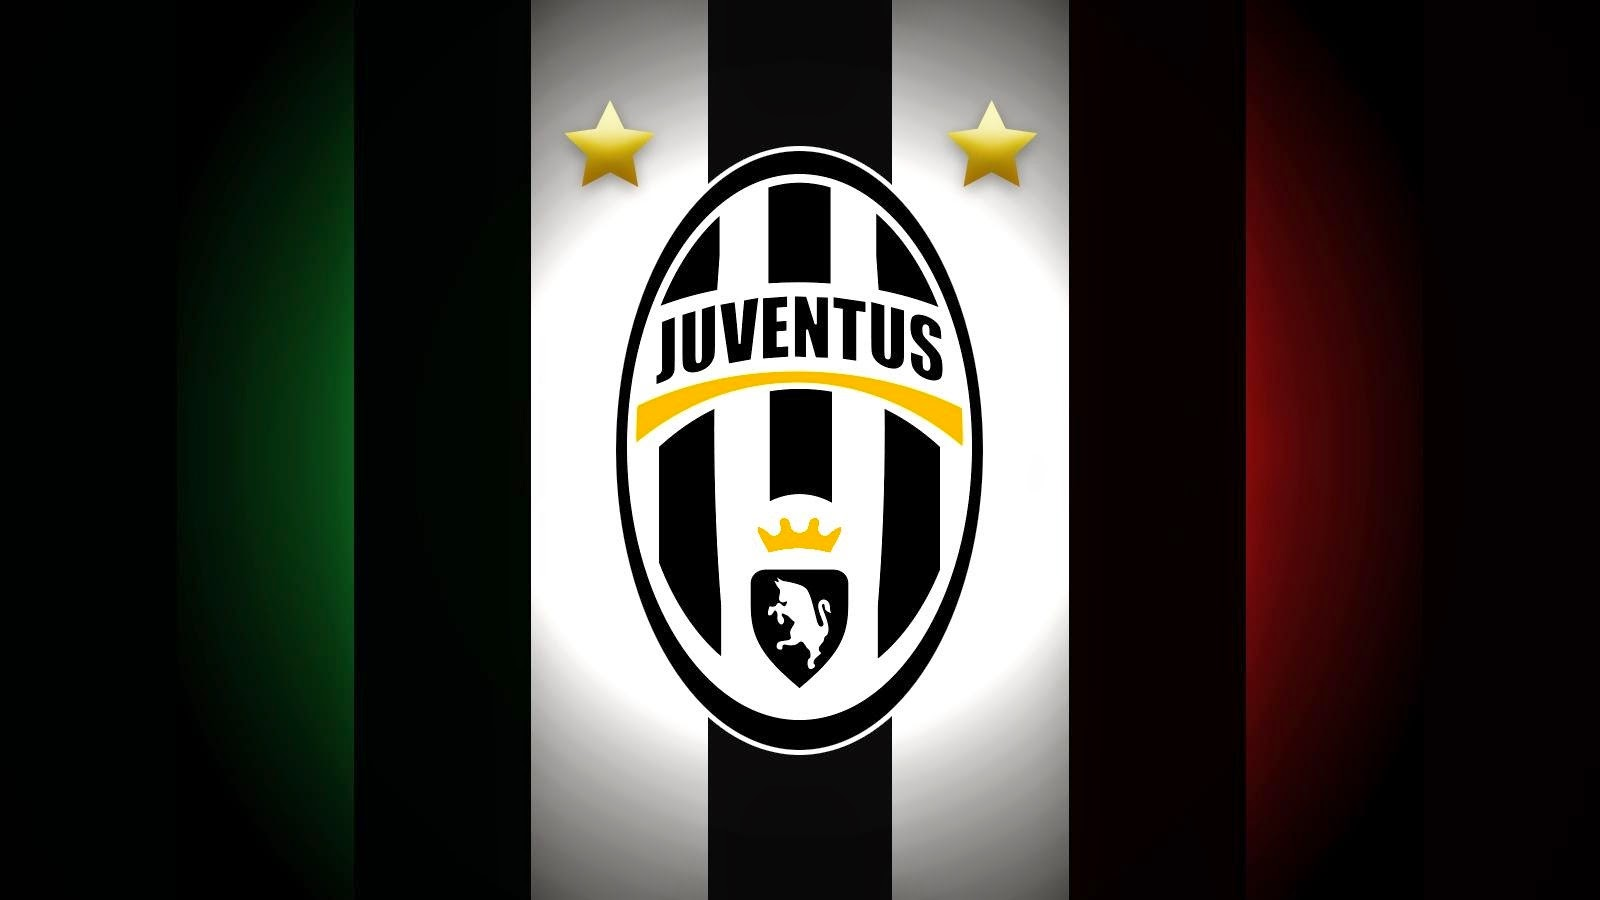 Sports and Players: Juventus Football Club